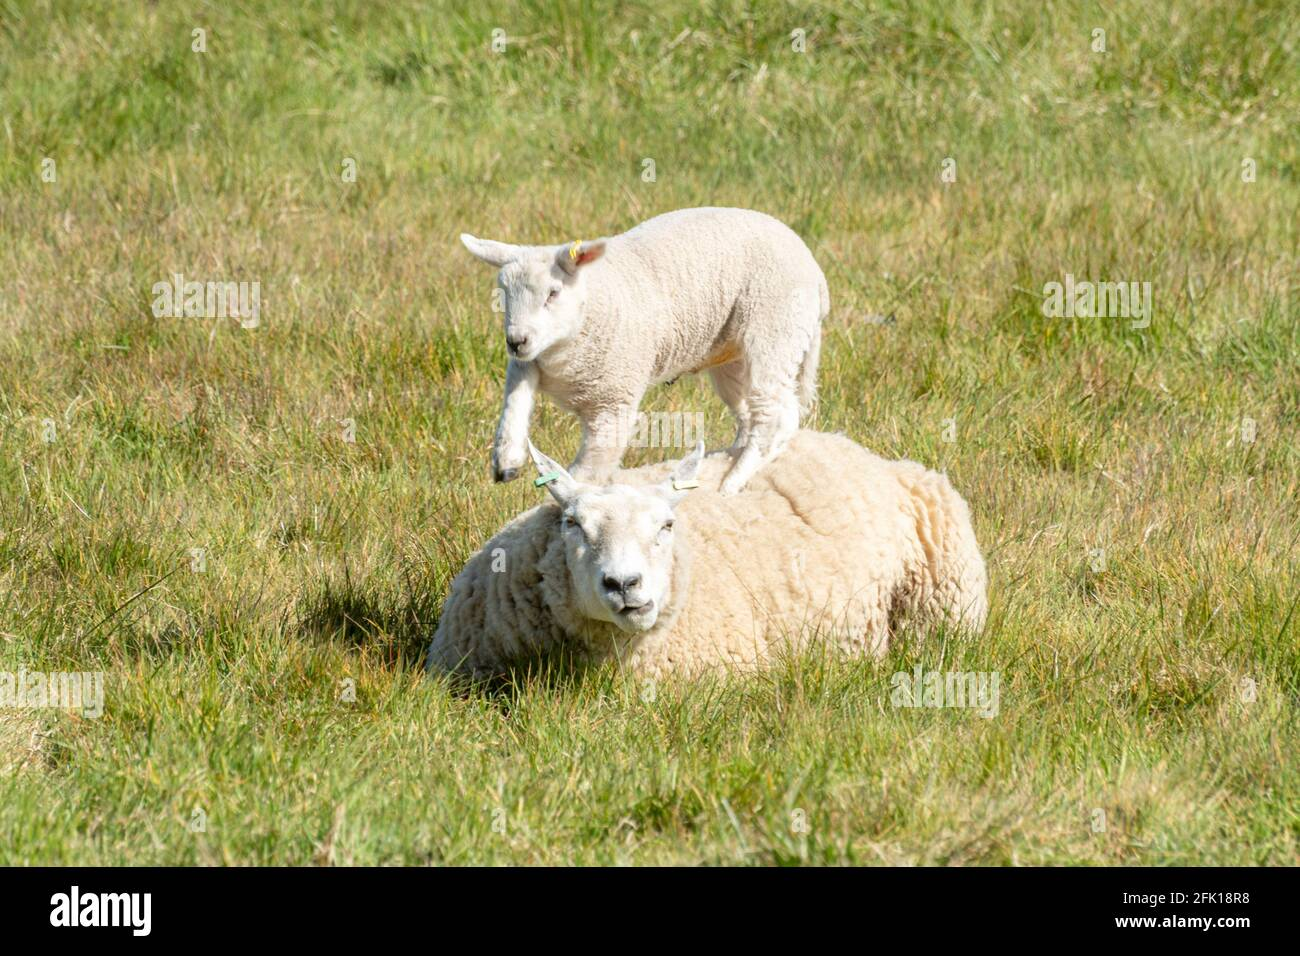 gambolling-lamb-jumping-on-its-mothers-back-sheep-in-field-during-spring-uk-2FK18R8.jpg